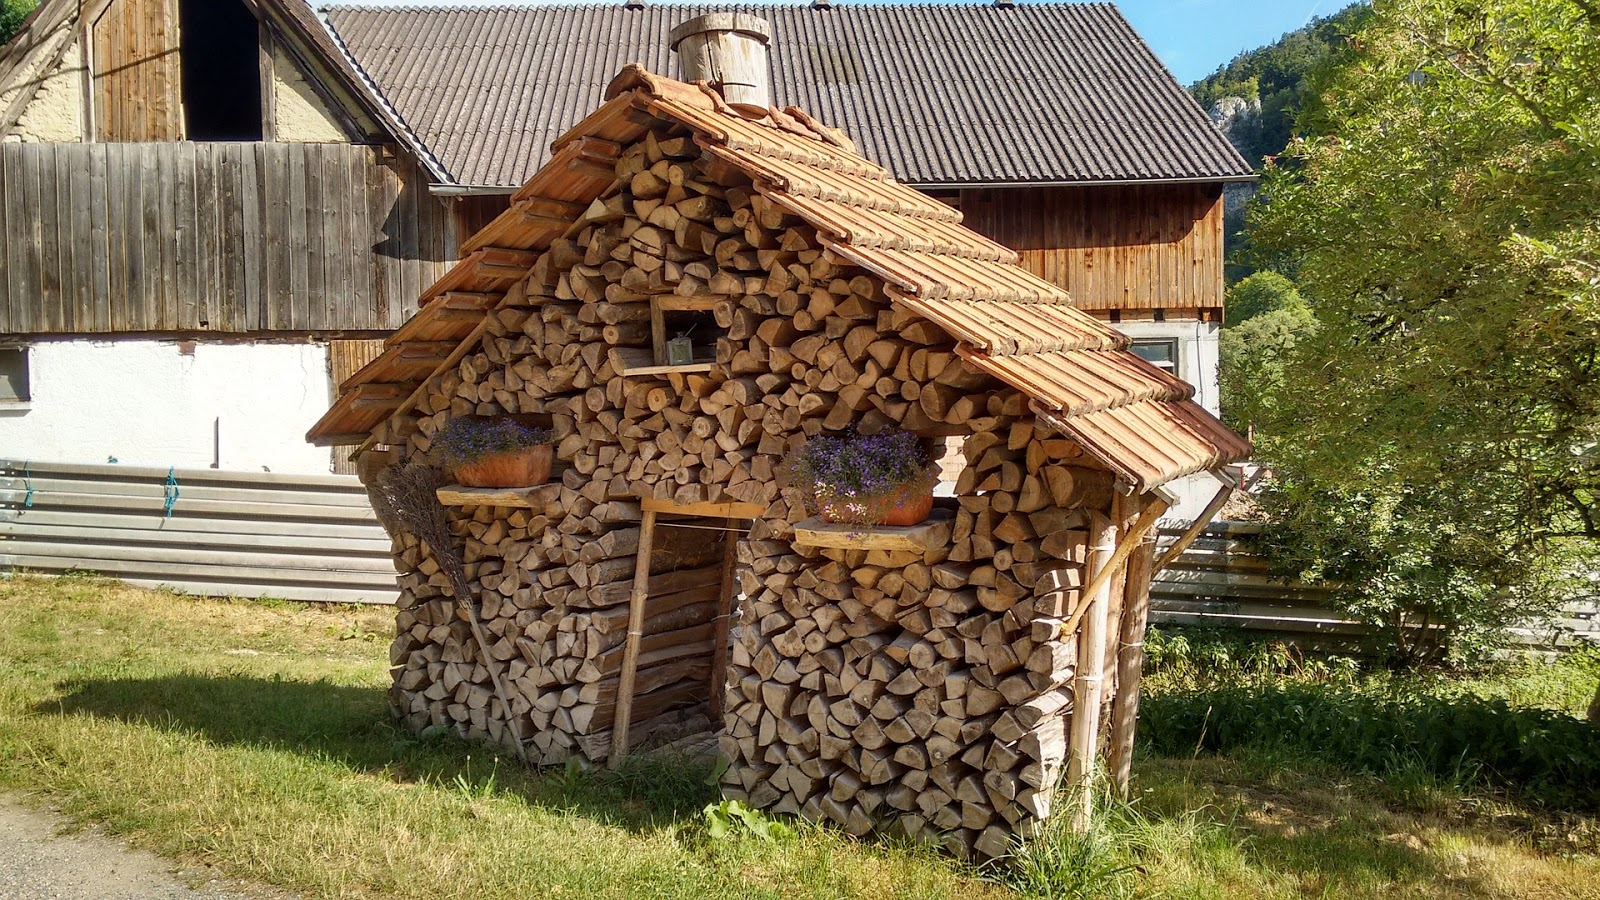 ... Donu0027t Have A Designated Shed Or Outhouse For Them, Hereu0027s Five Creative  Ways To Store Your Wood Burning Logs, Including Some Weird And Wacky Ones  Too. Home Design Ideas